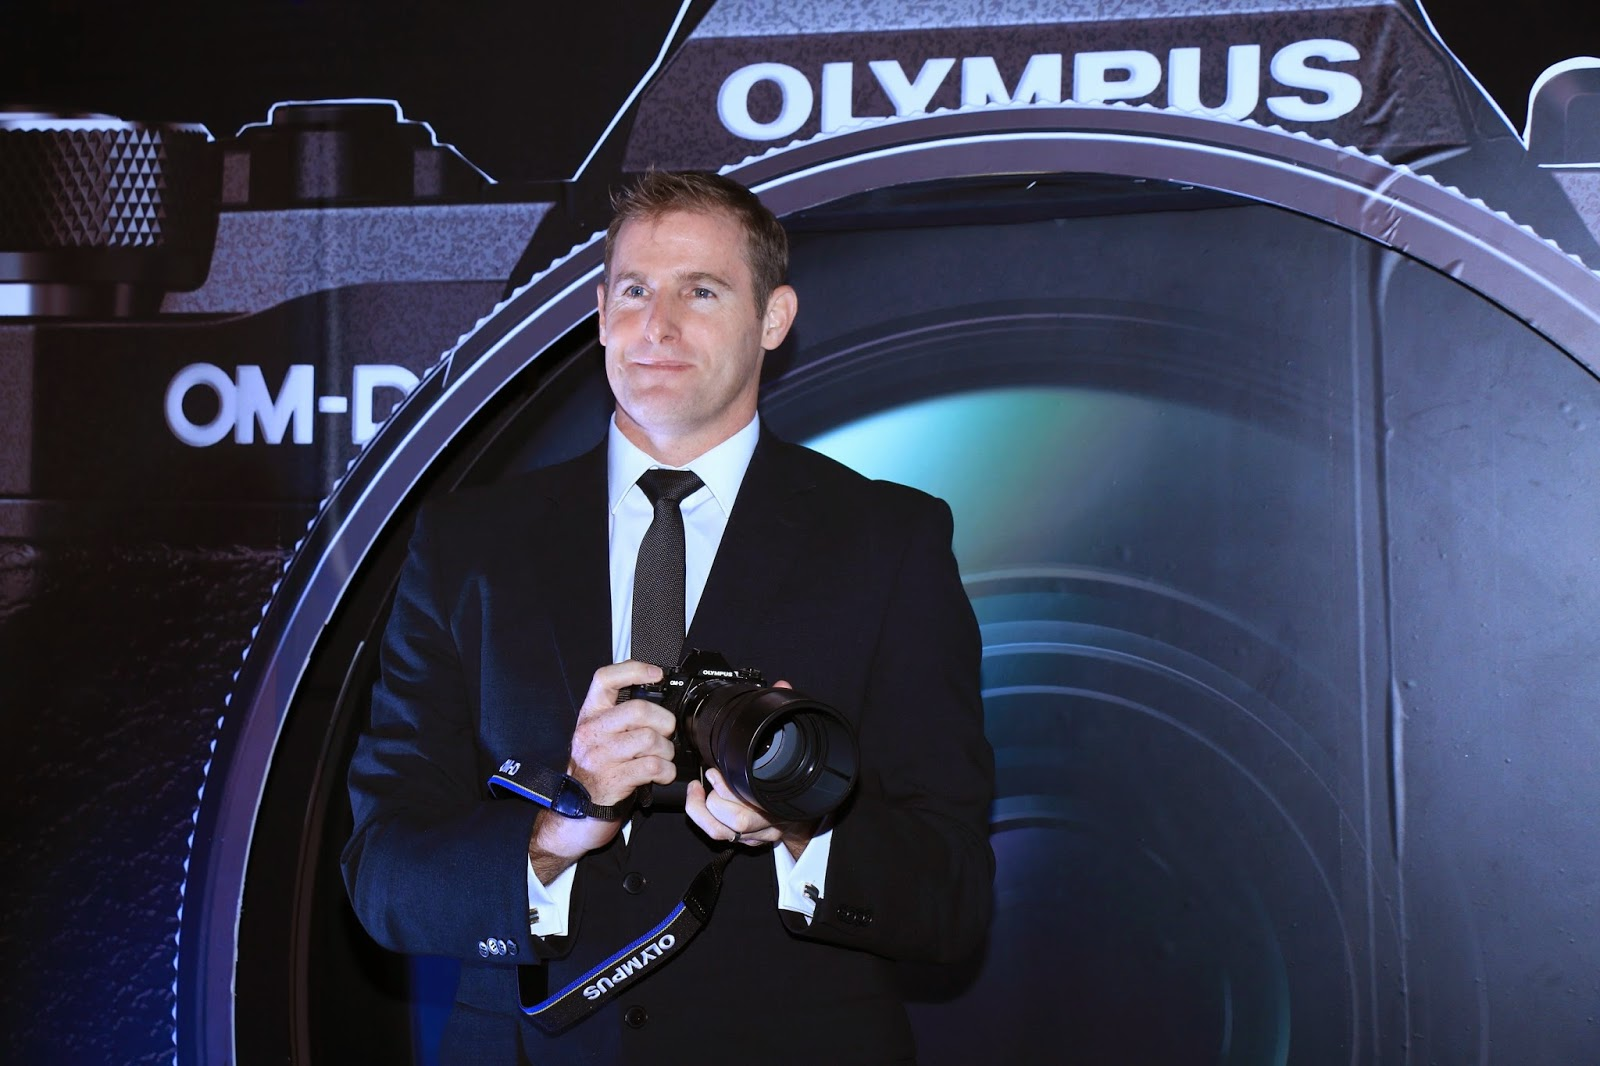 Mr. Marc Radatt, GM - Olympus Corporation Asia Pacific unveiling the Olympus OM-D E-M5 Mark II Mirrorless camera